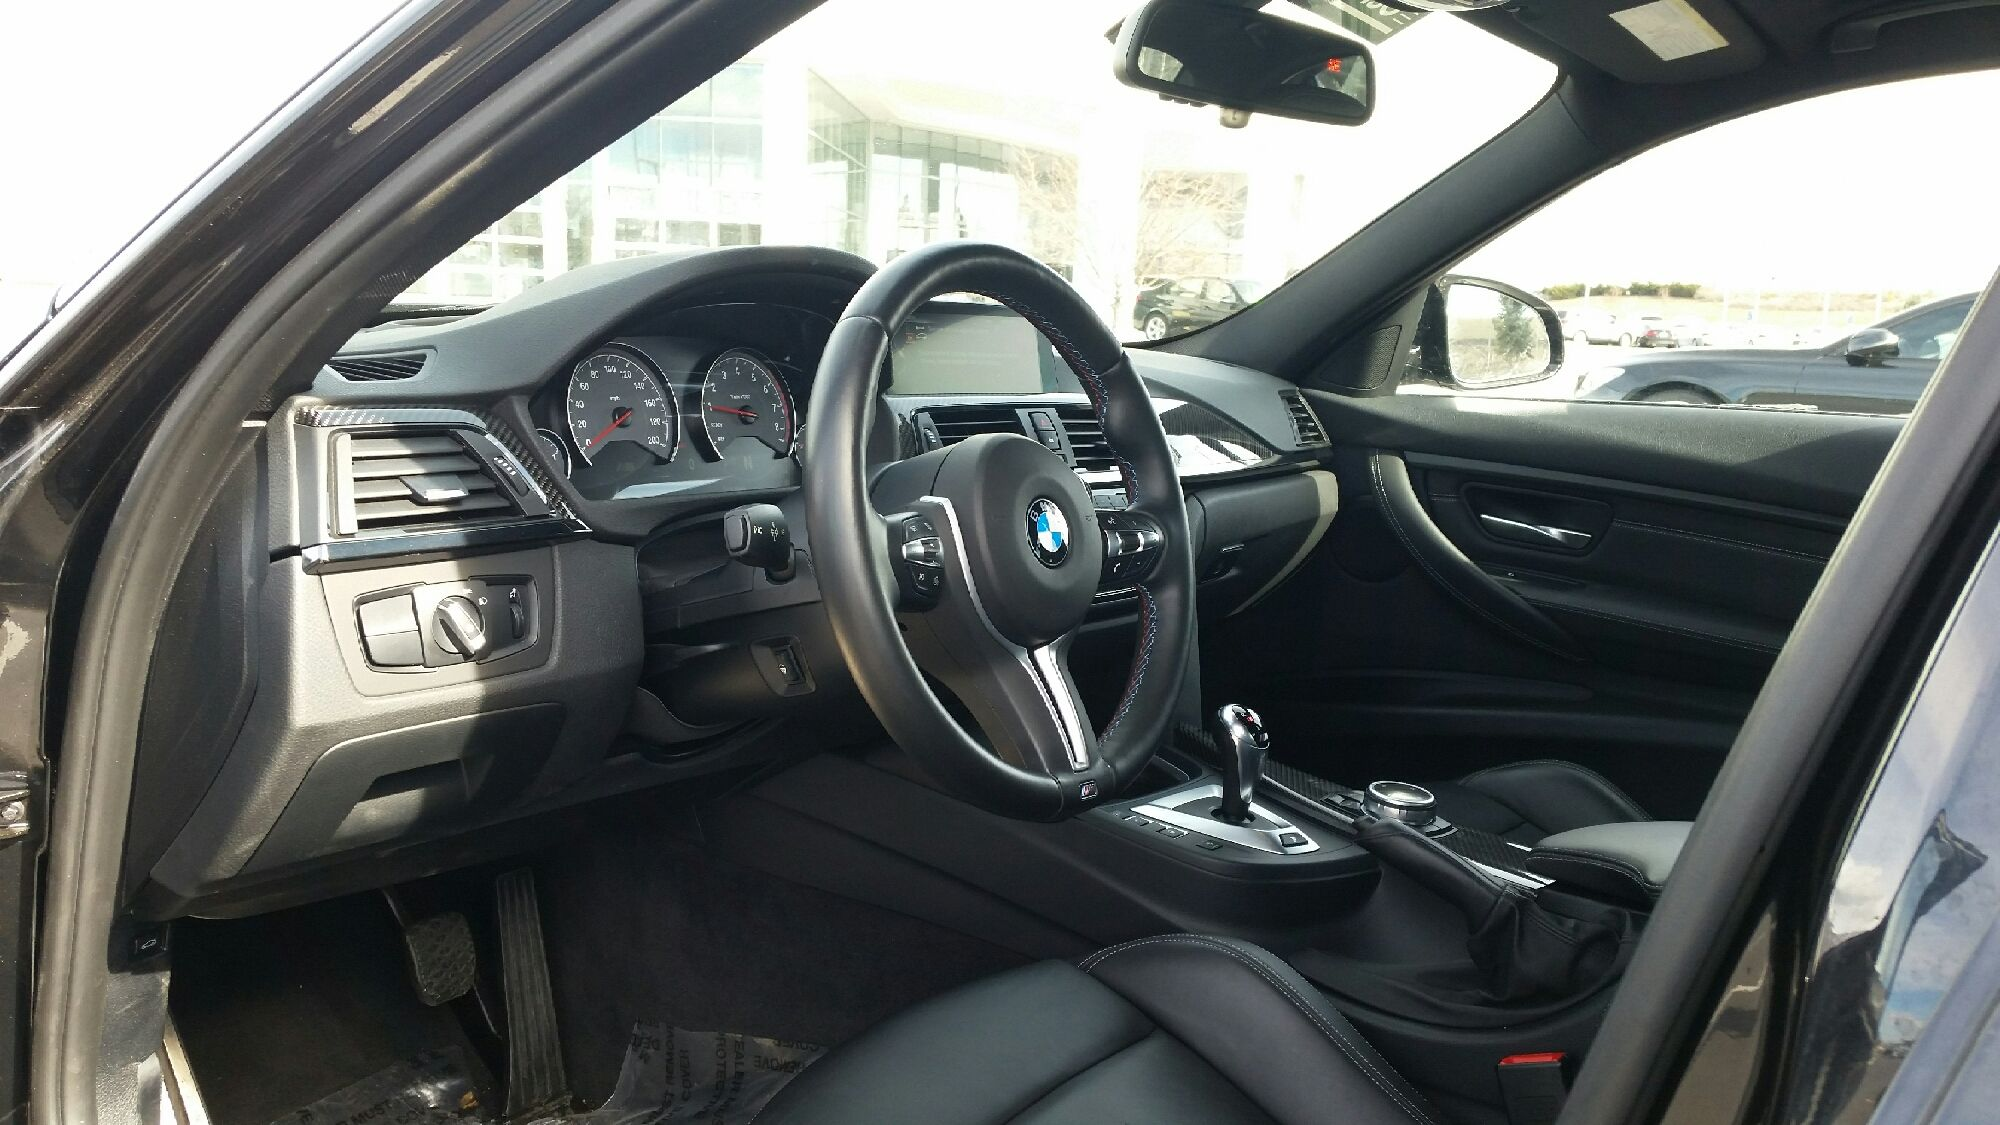 The front seats and dash of the BMW I want.